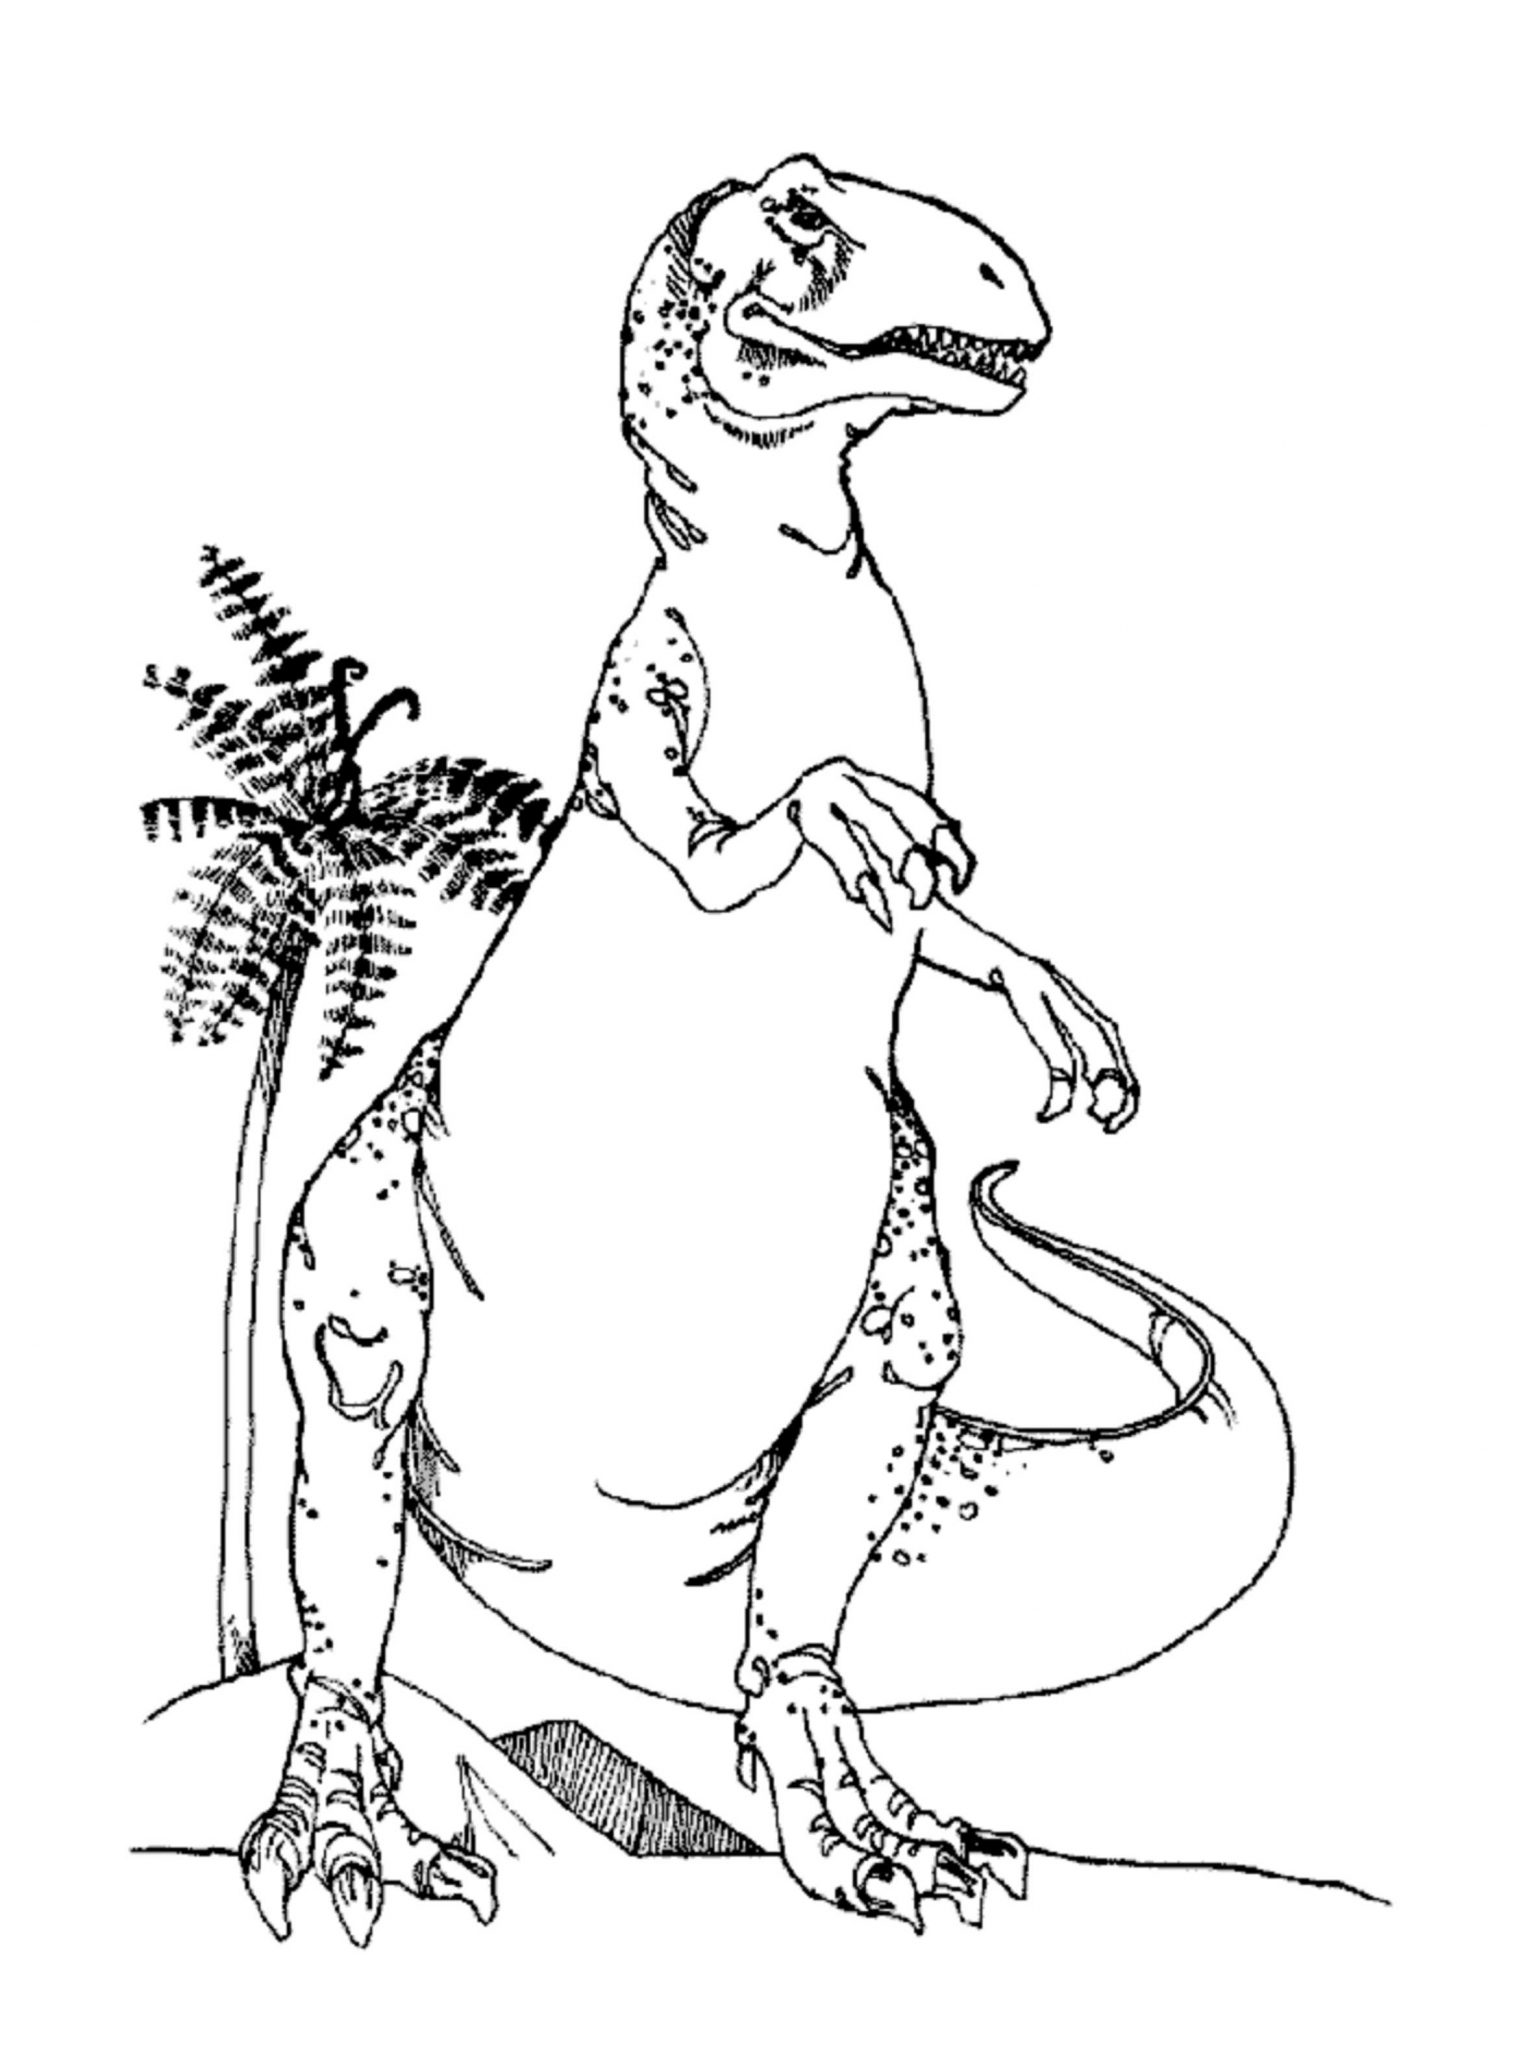 Print & Download - Dinosaur T-Rex Coloring Pages for Kids